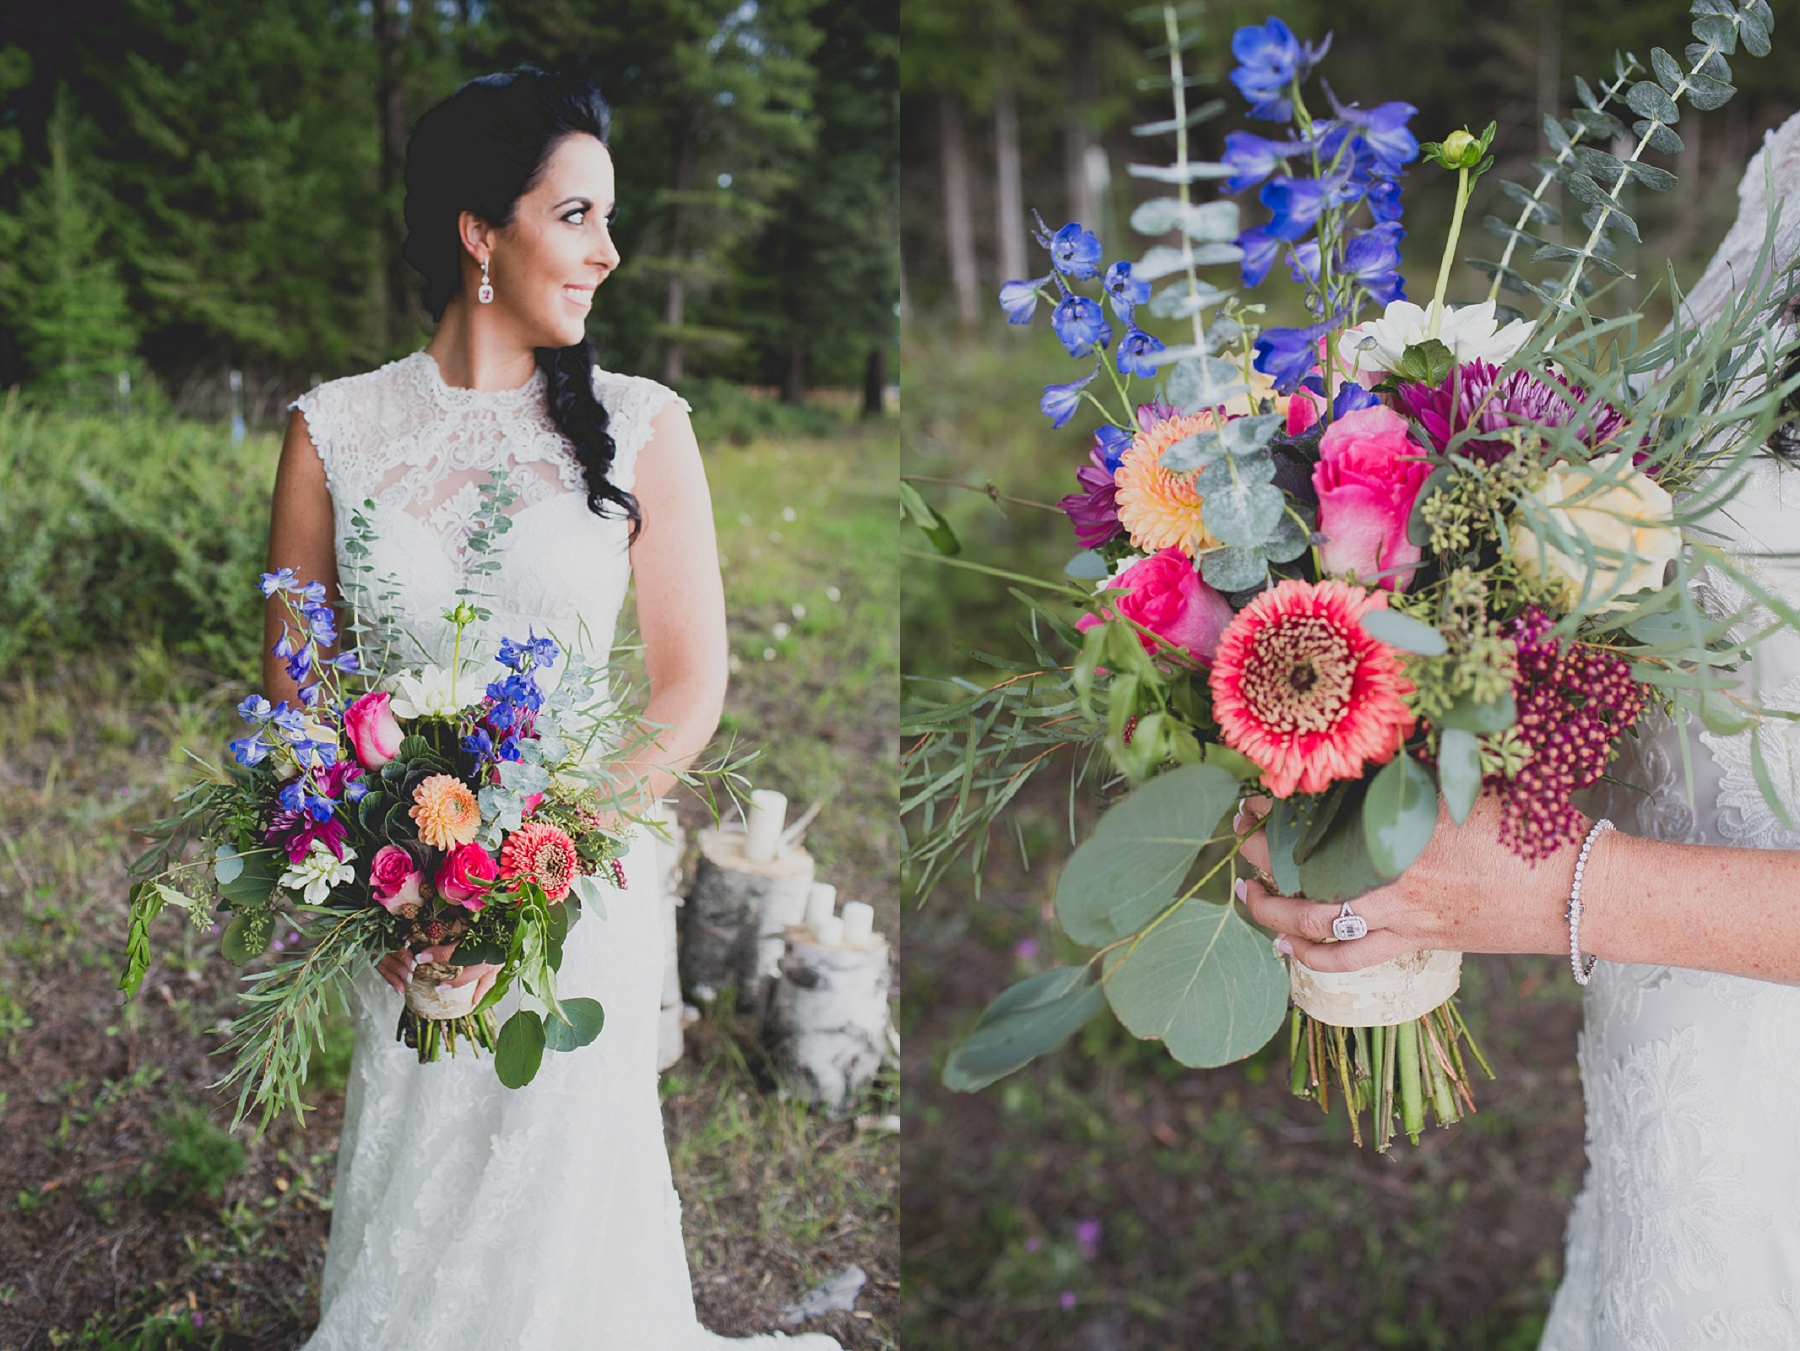 Jennifer_Mooney_Photo_whitefish_equestrian_center_styled_shoot_amy_deering_events_00005.jpg